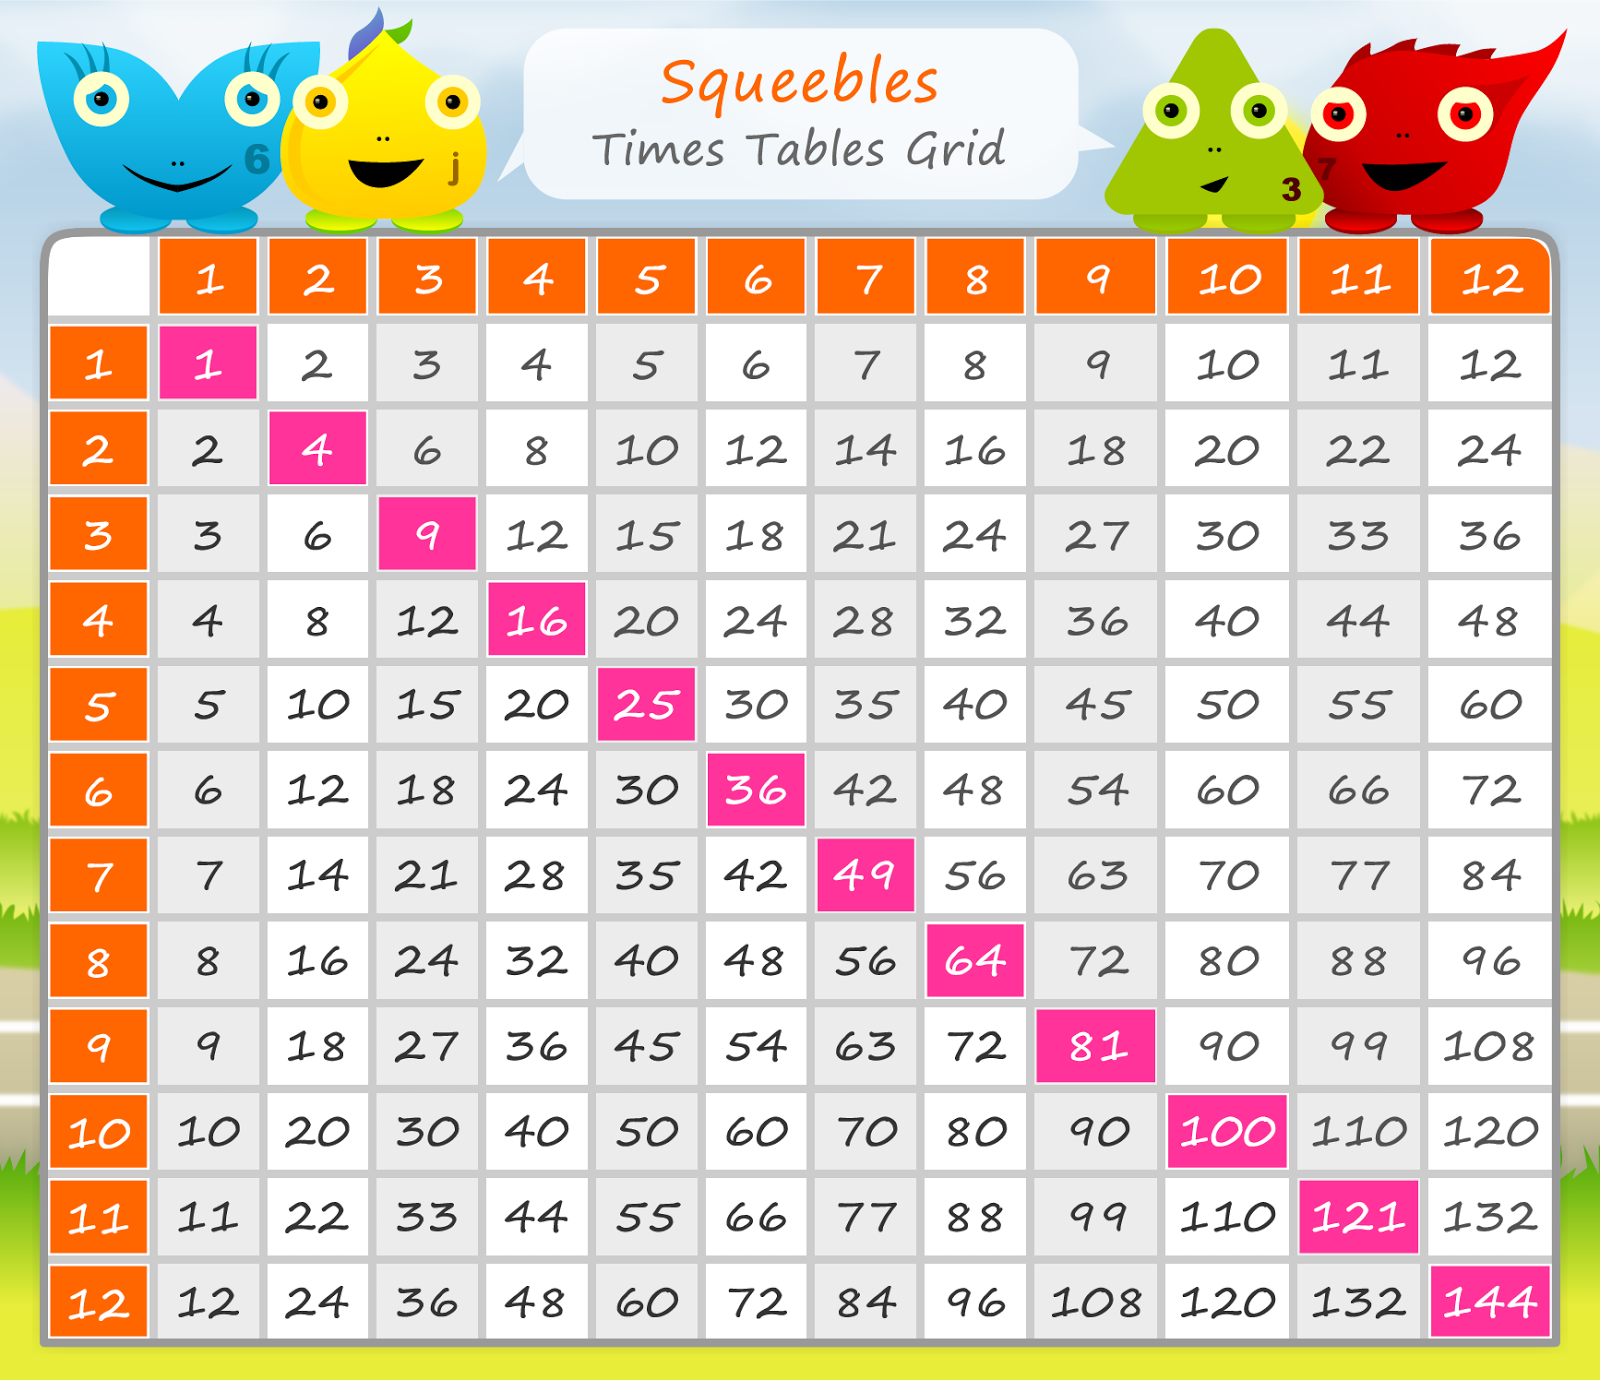 Dynamite image with time tables chart printable